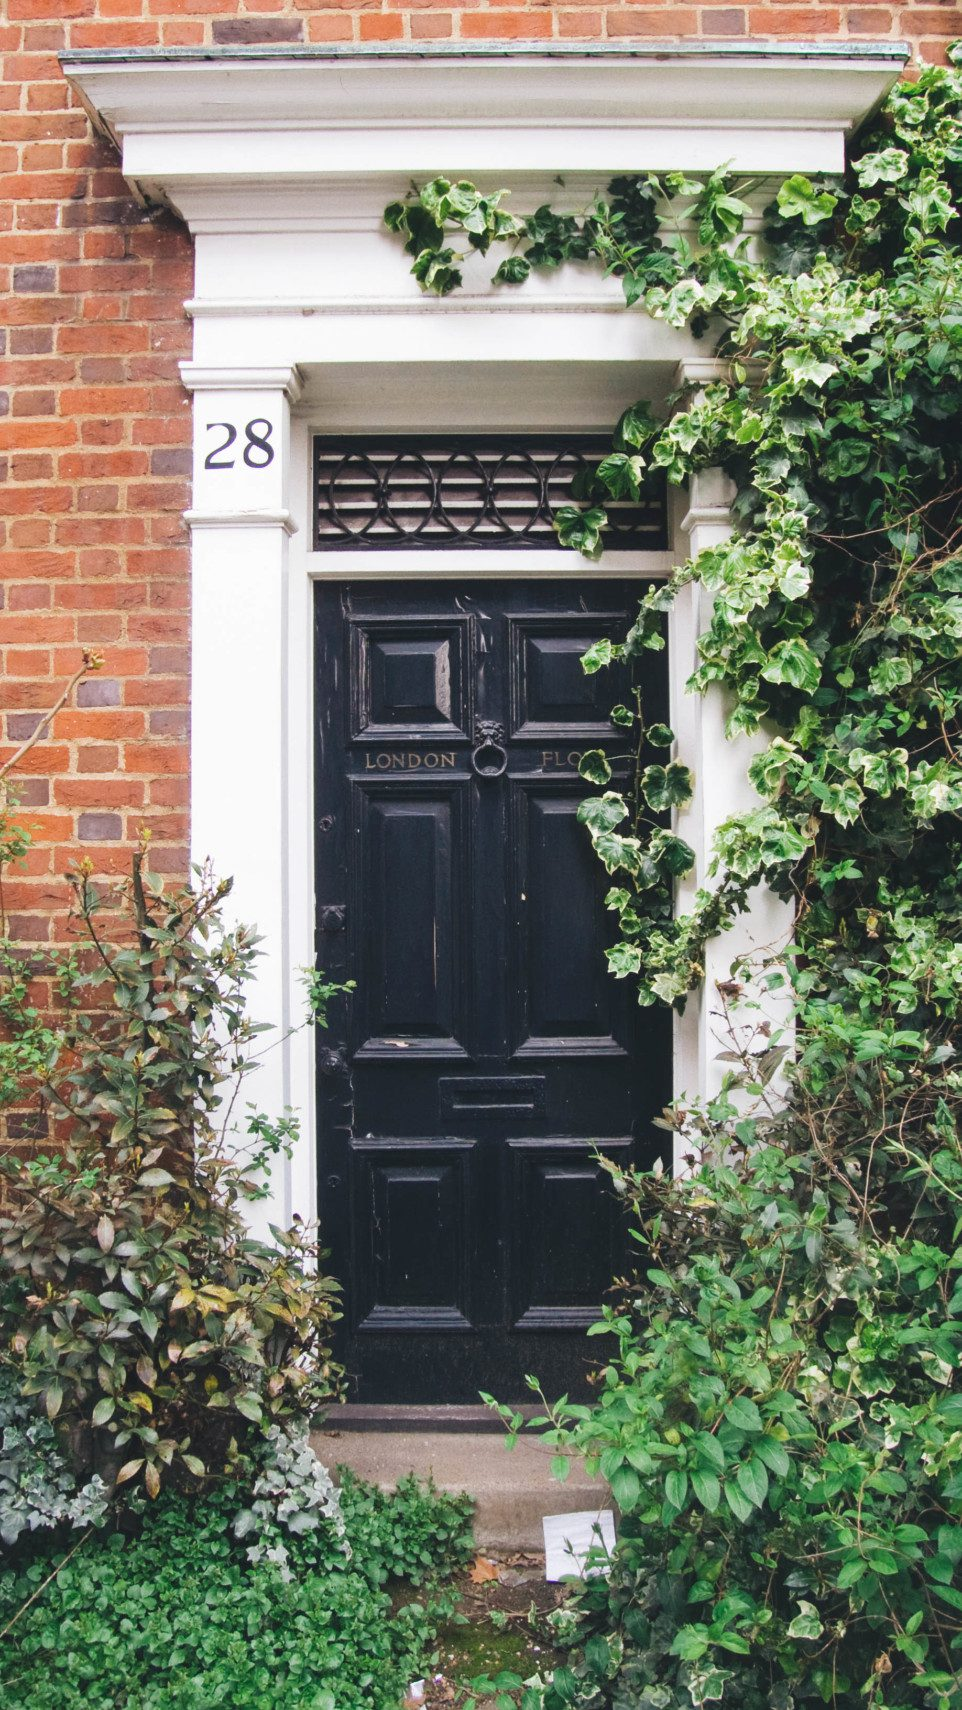 Calling all architecture lovers! A look at beautiful doors around the world.